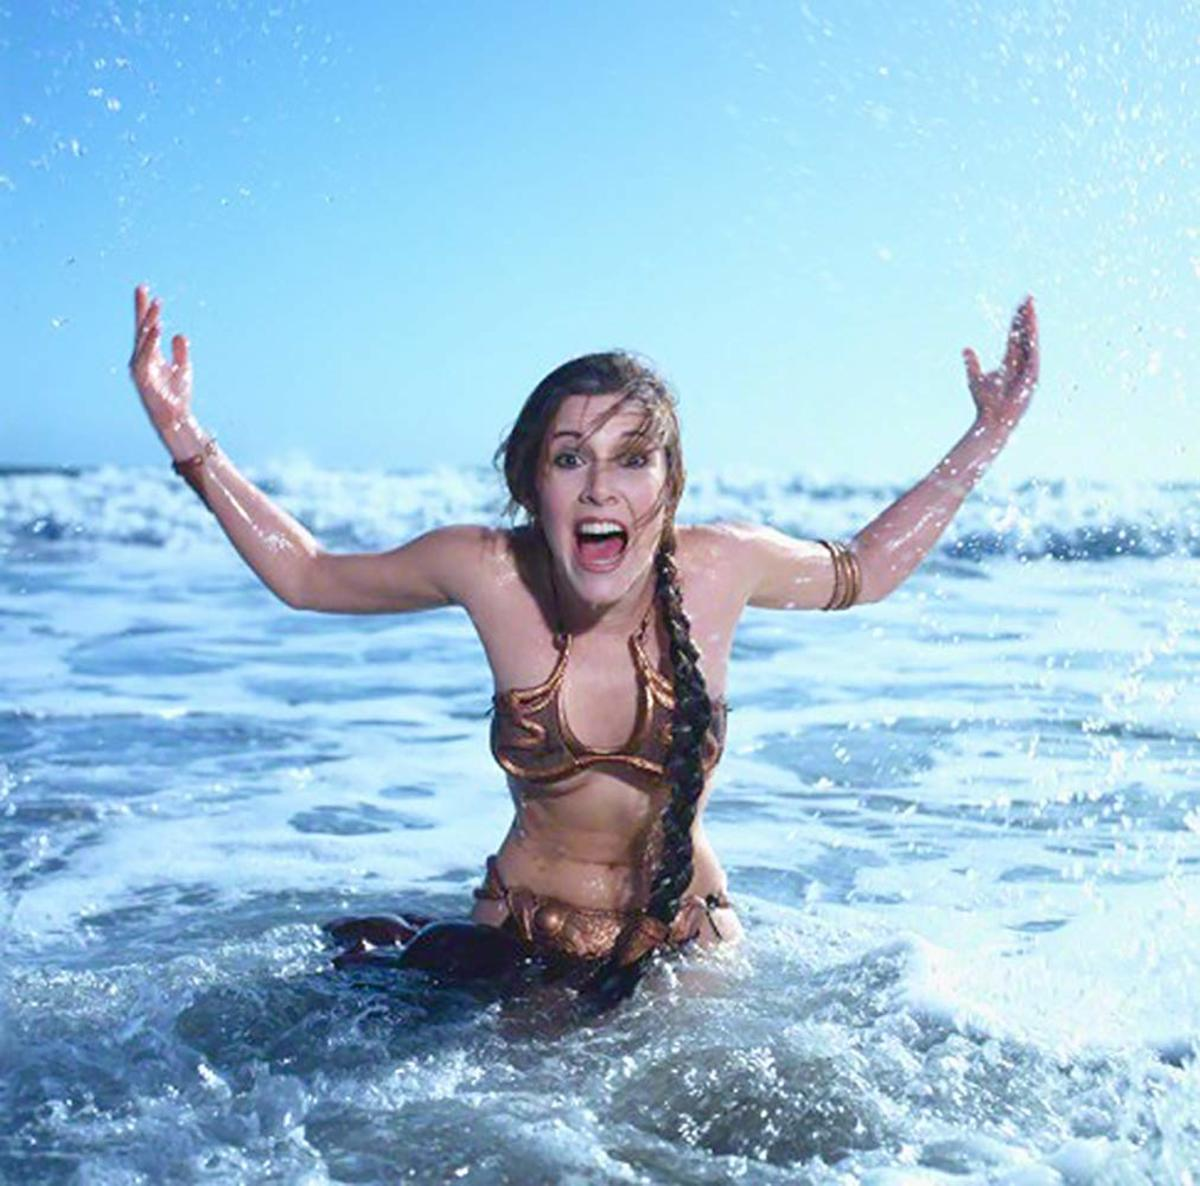 I don't know if it's inappropriate to include a photo of Fisher in a bikini to pay respects, but this picture shows her with such a fun and joyful spirit that it's hard not to be totally charmed by her in it. Rest in peace, Carrie Fisher.